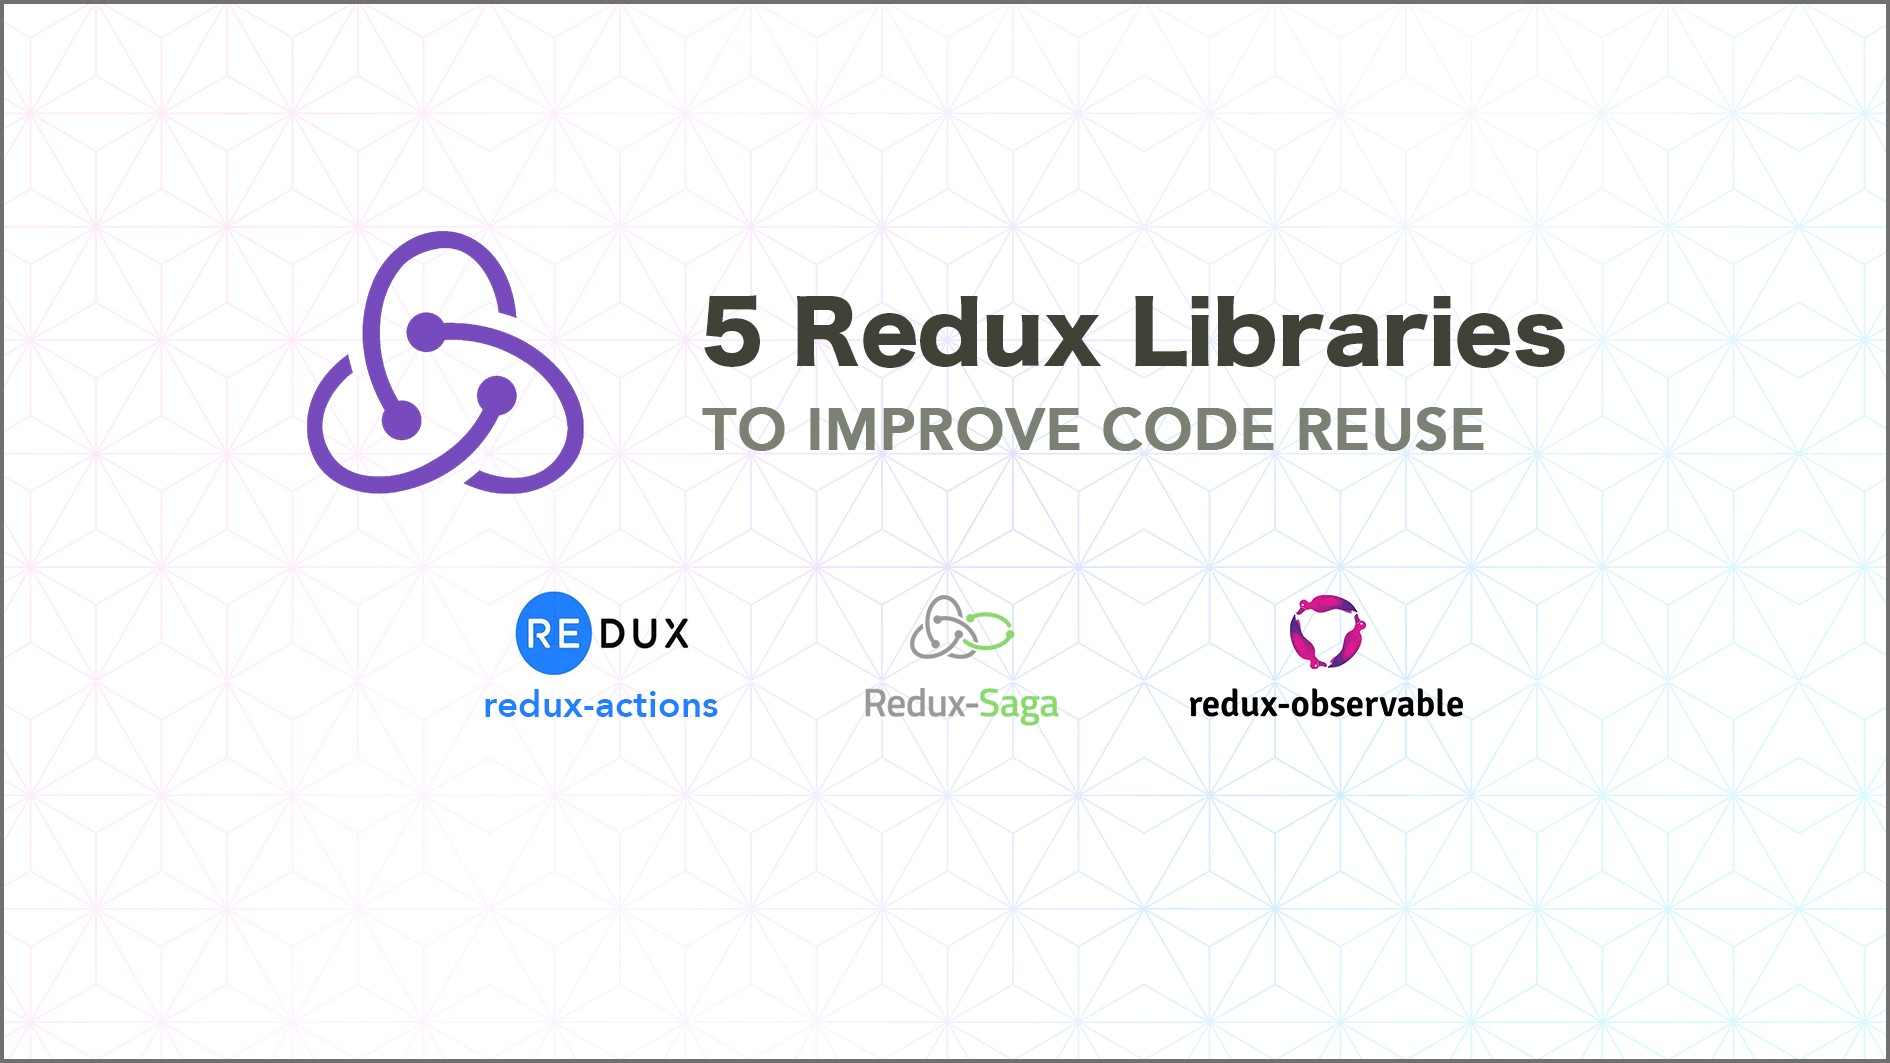 5 key Redux libraries to improve code reuse - LogRocket Blog